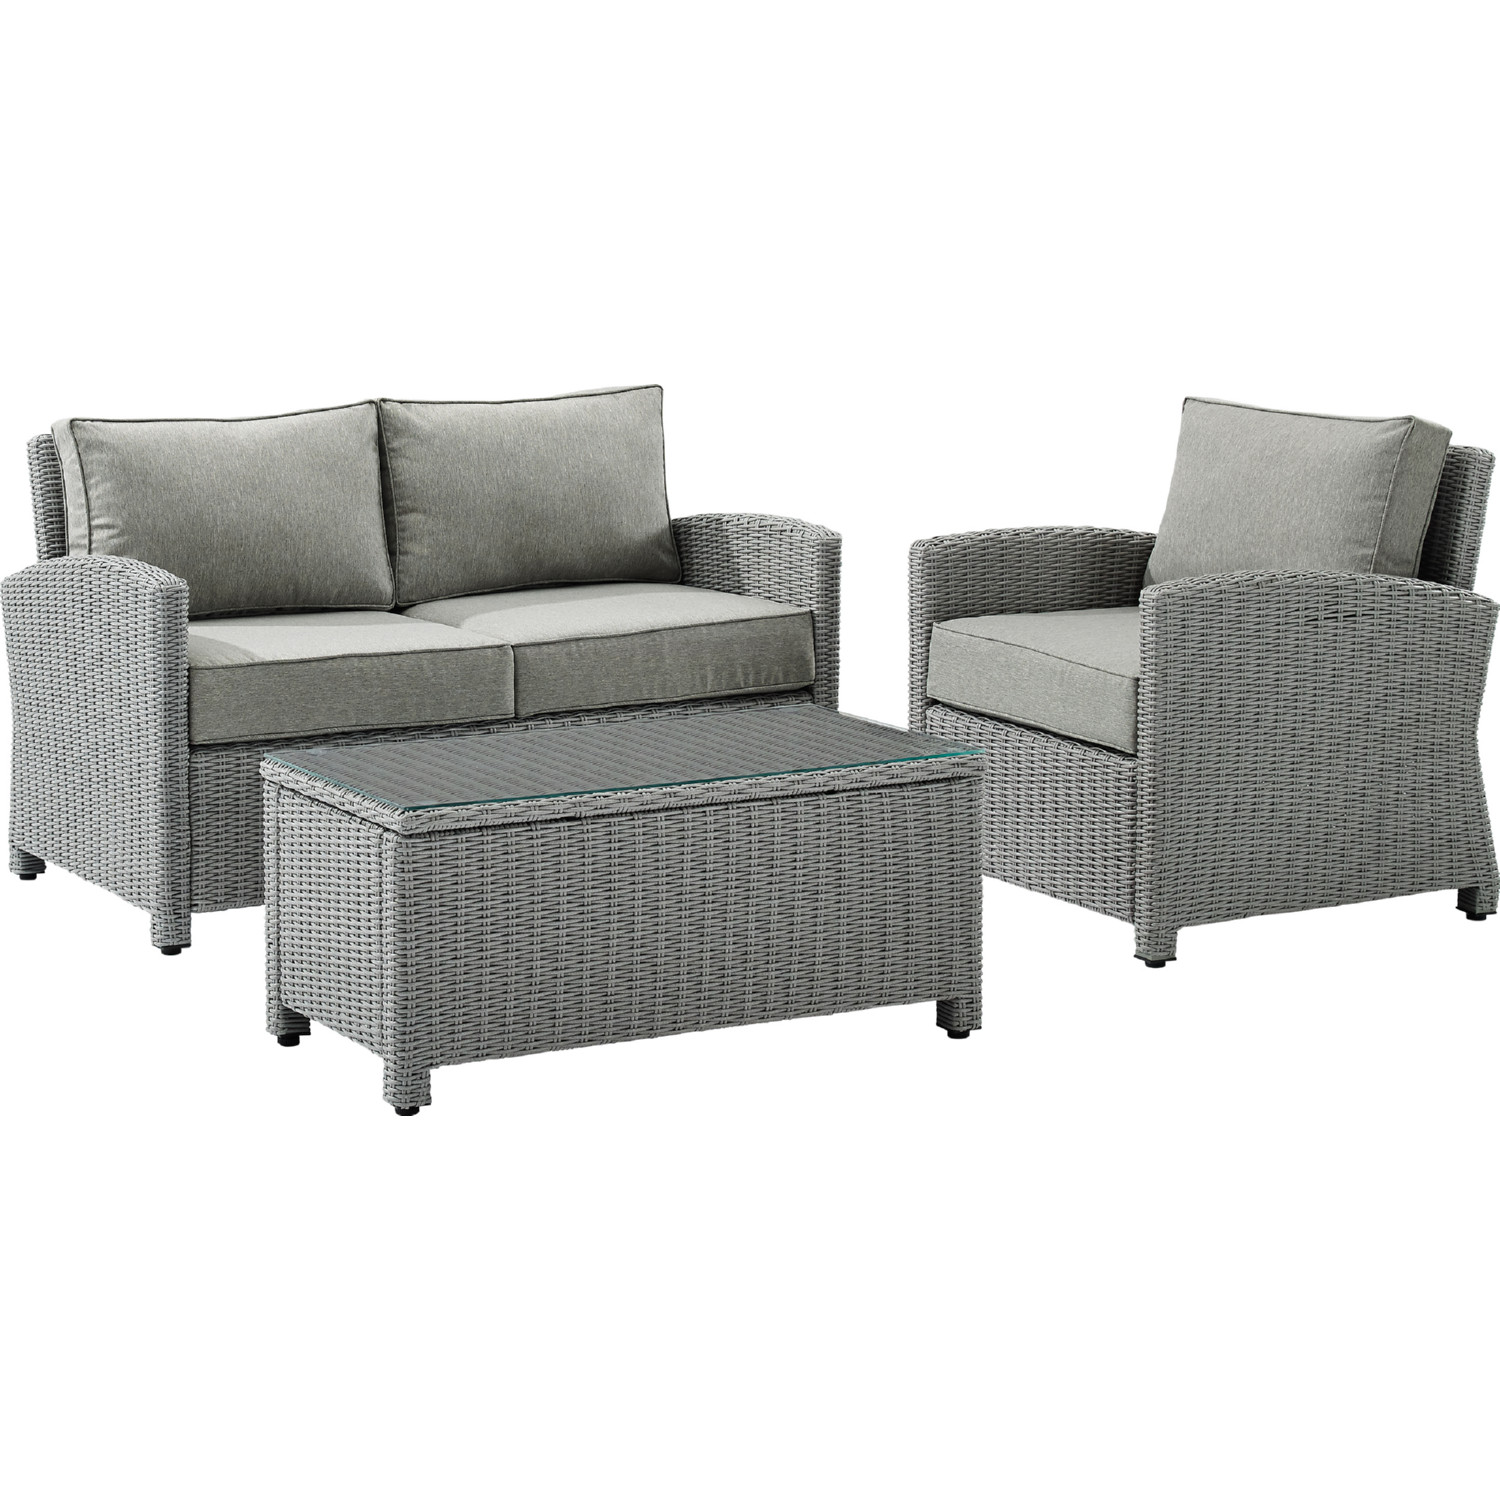 Picture of: Crosley Ko70027gy Gy Bradenton Outdoor Loveseat Arm Chair Table Set In Grey Wicker Fabric